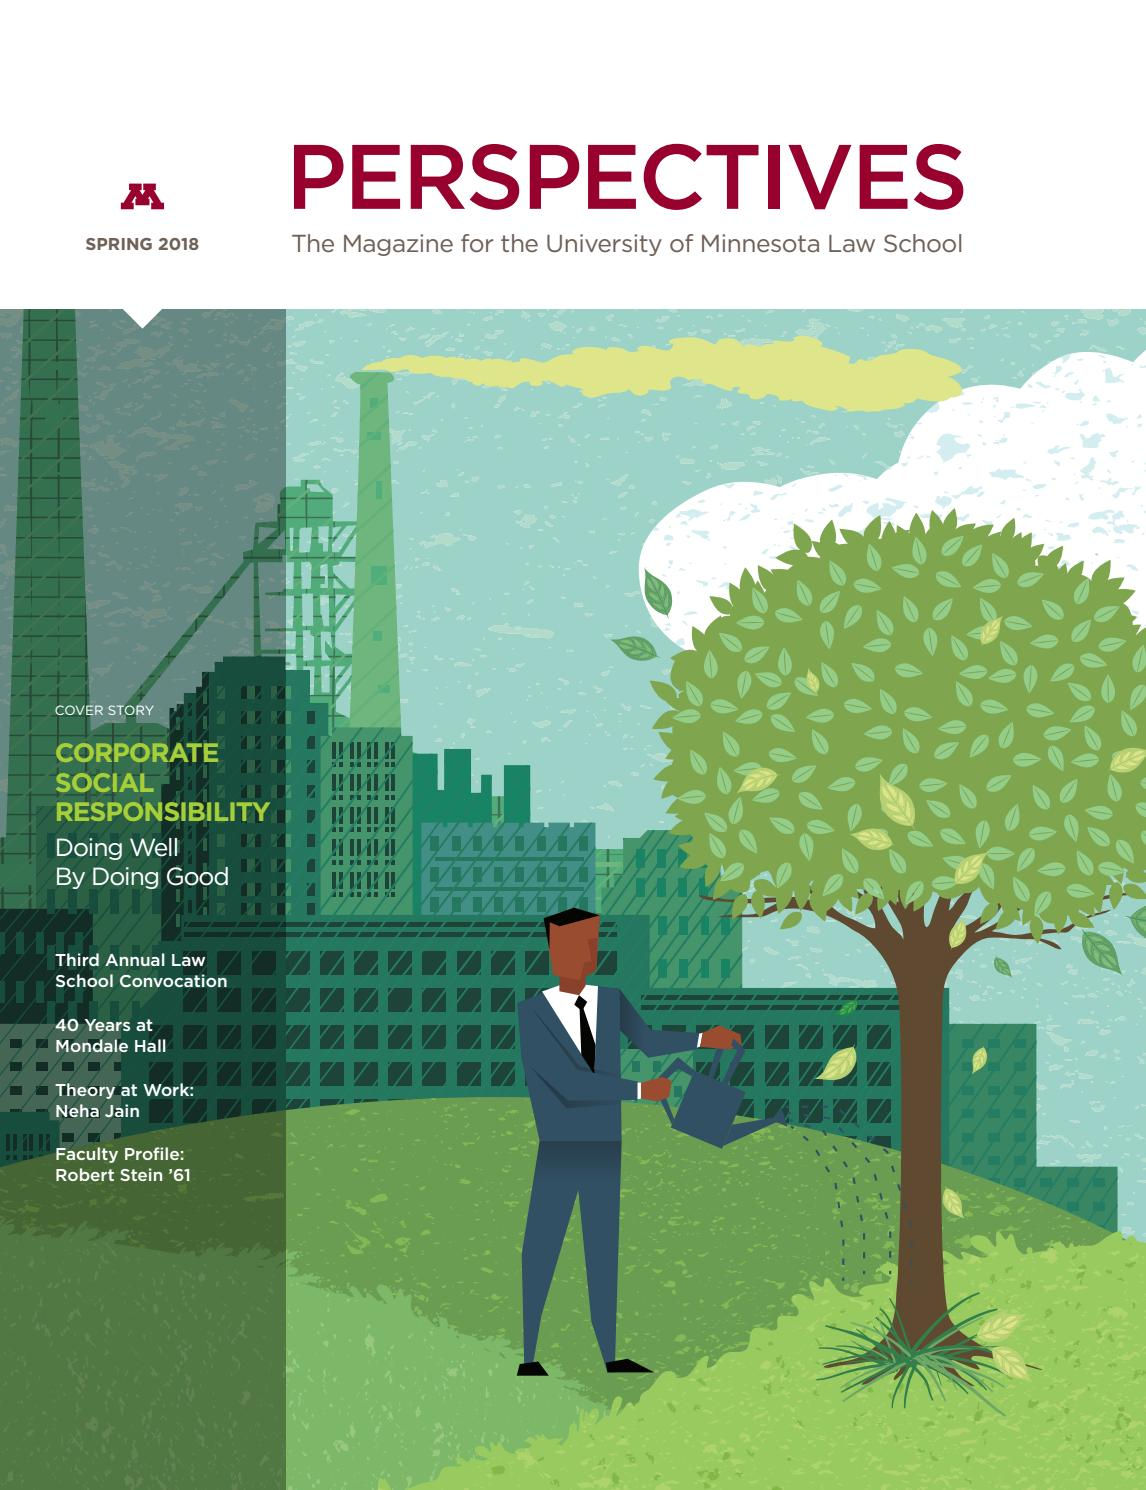 Spring 2018 Perspectives by University of Minnesota Law School - issuu